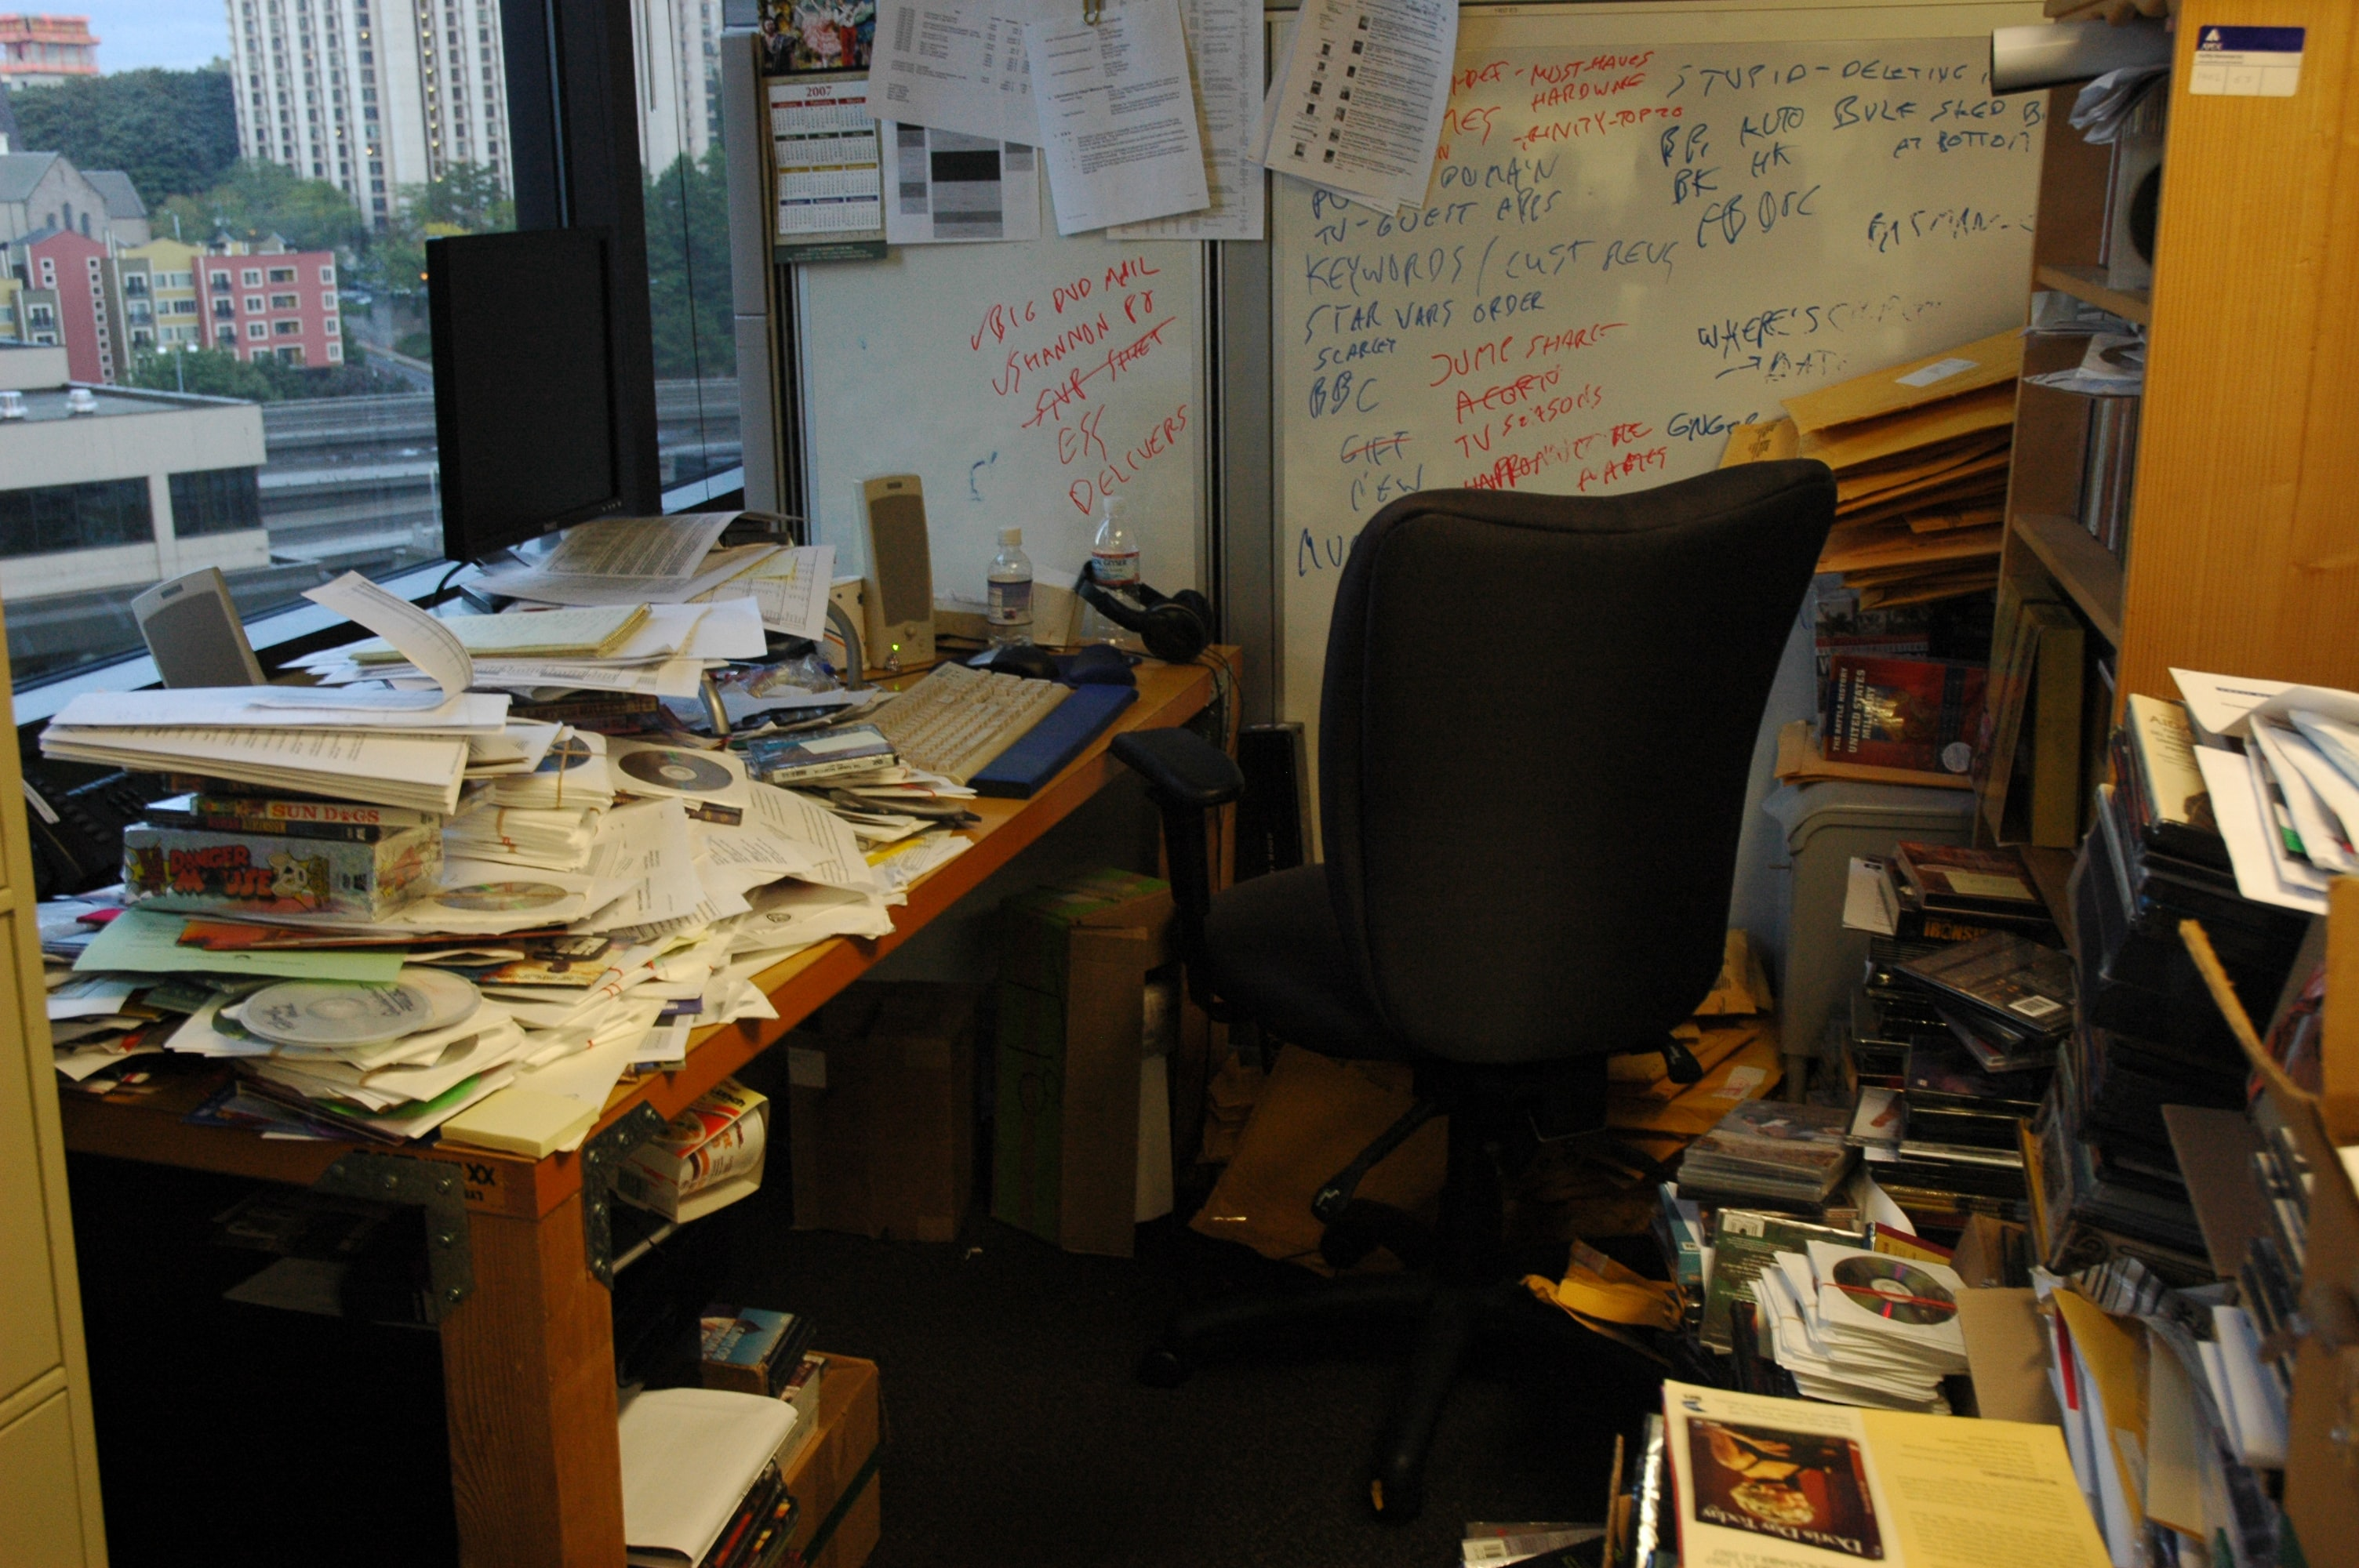 Feeling cluttered during isolation? Wilson Storage can help